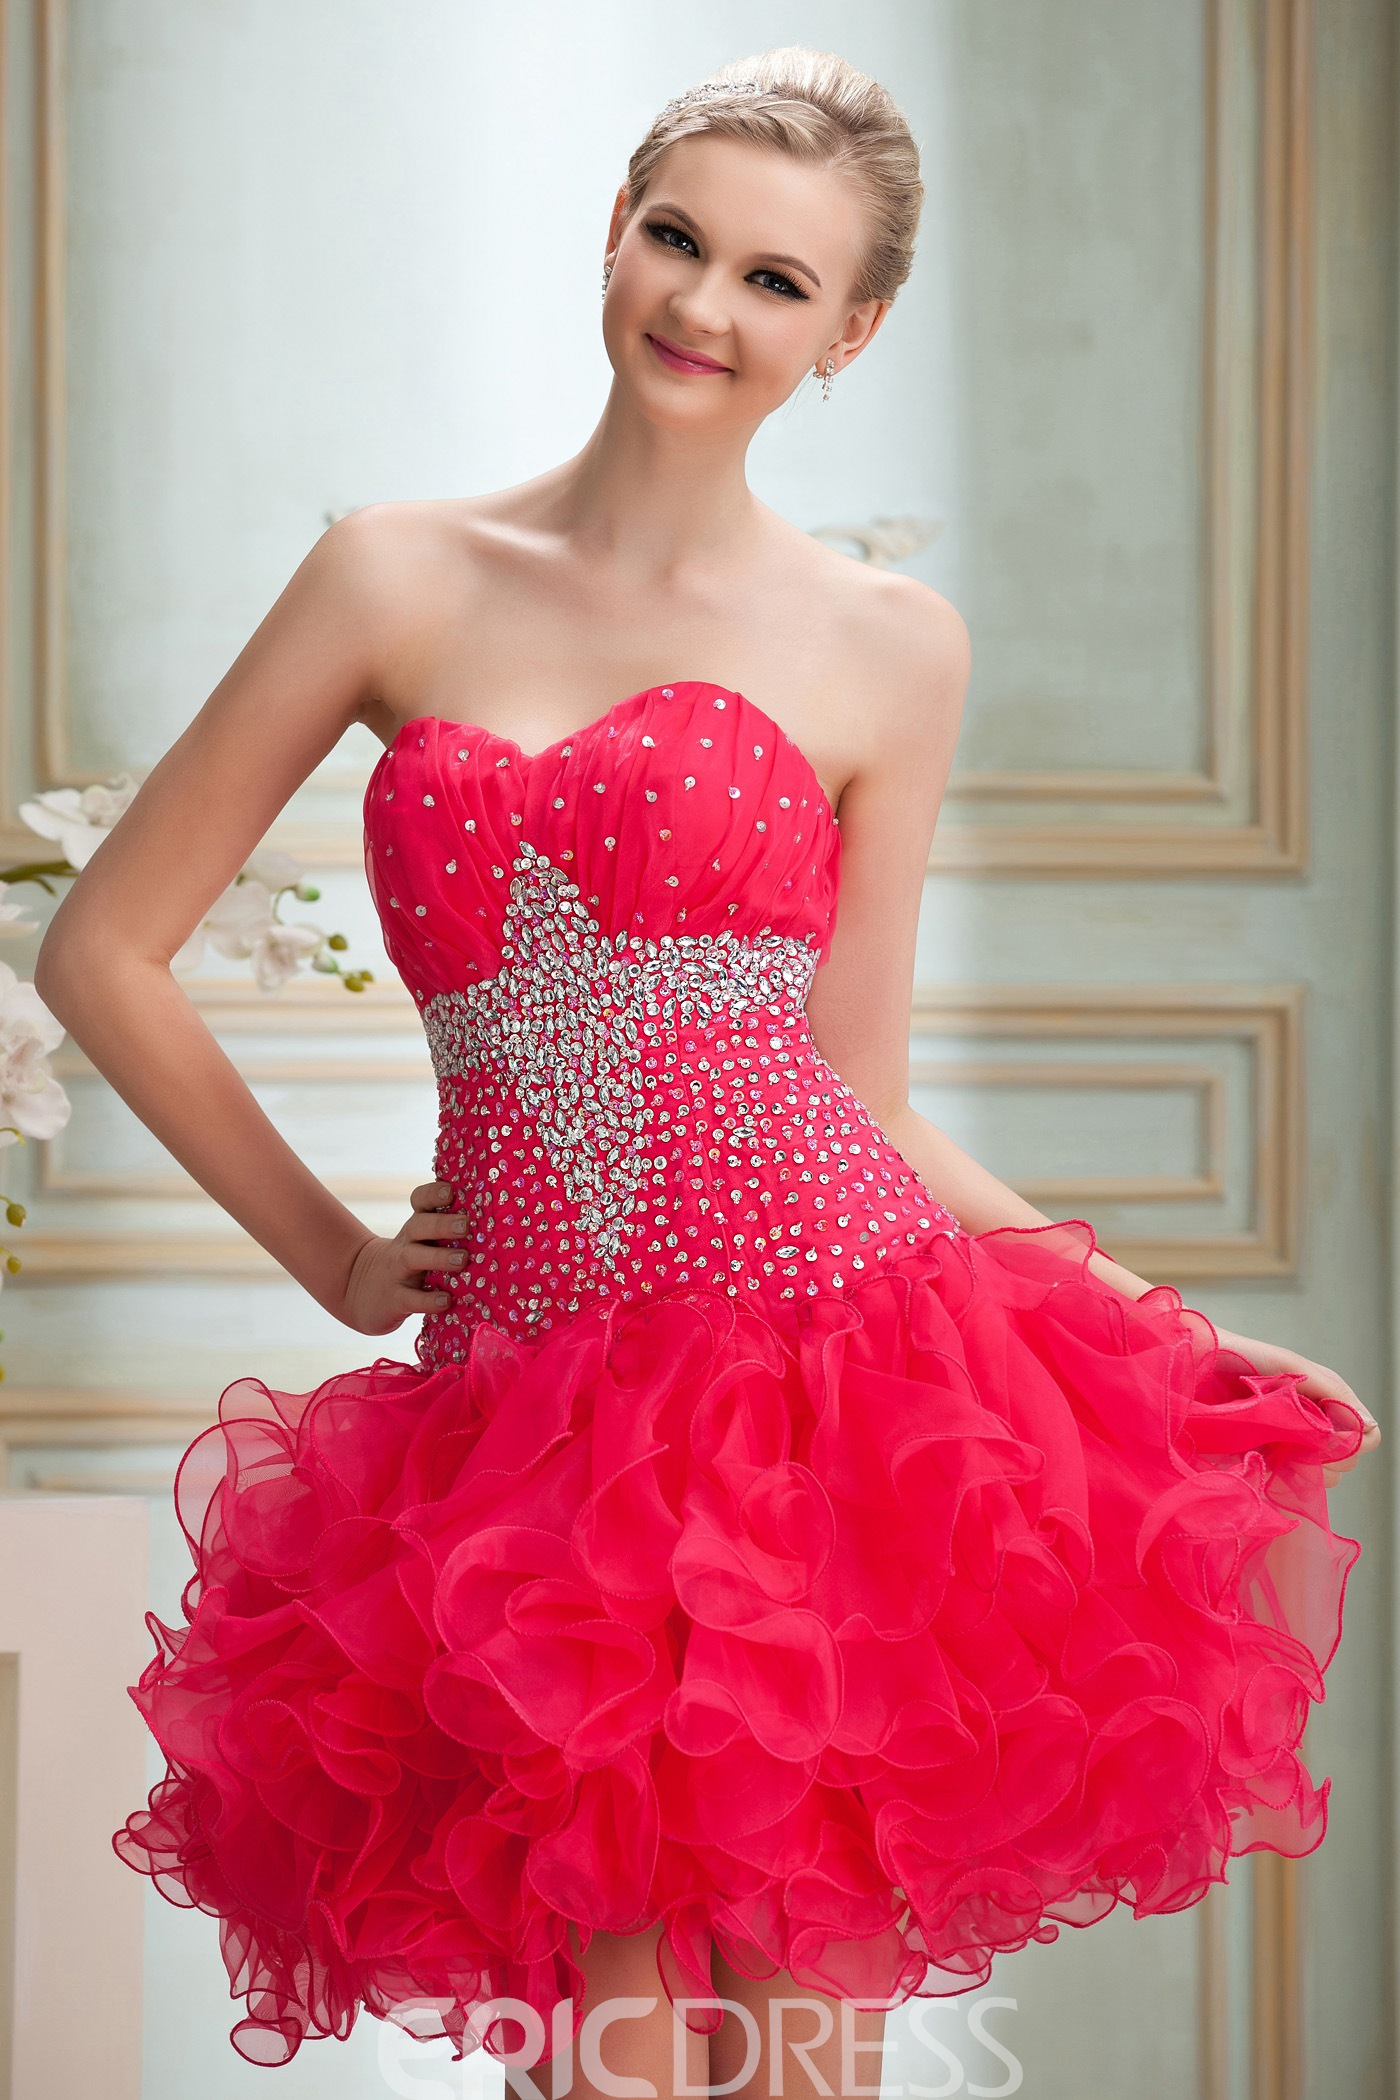 A-Line Sweetheart Mini-Length Empire Waistline Yanas Homecoming/Cocktail Dress